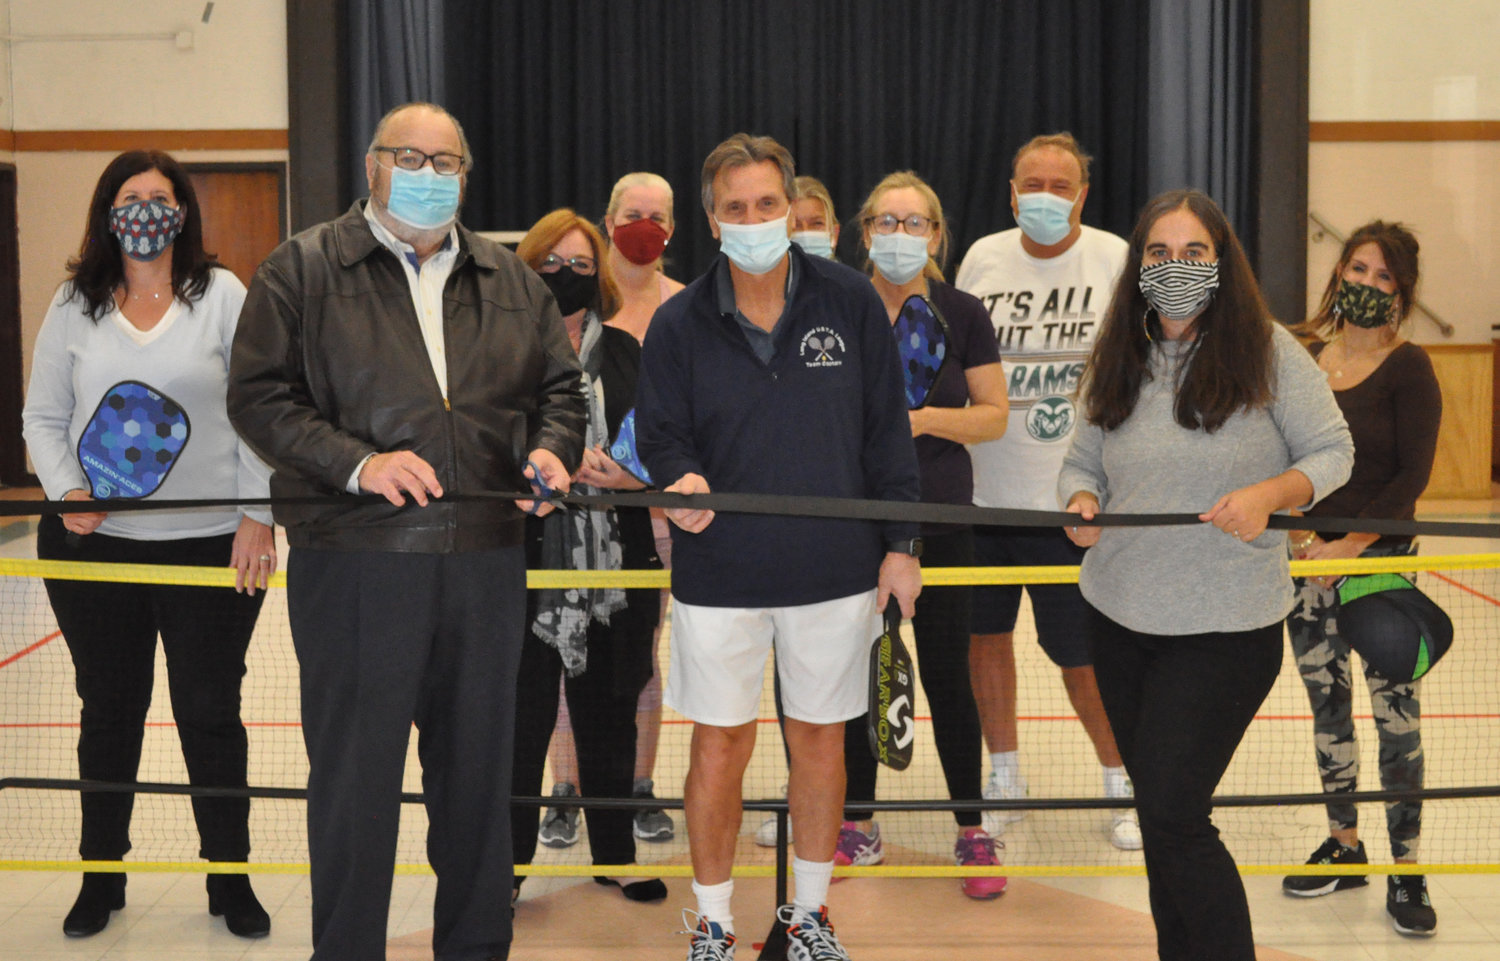 RVC Mayor Francis X. Murray, front left, joined Rec Center Acting Superintendent Karen Polito, right, and pickleball ambassador Frank Milillo for a ribbon cutting last Friday.